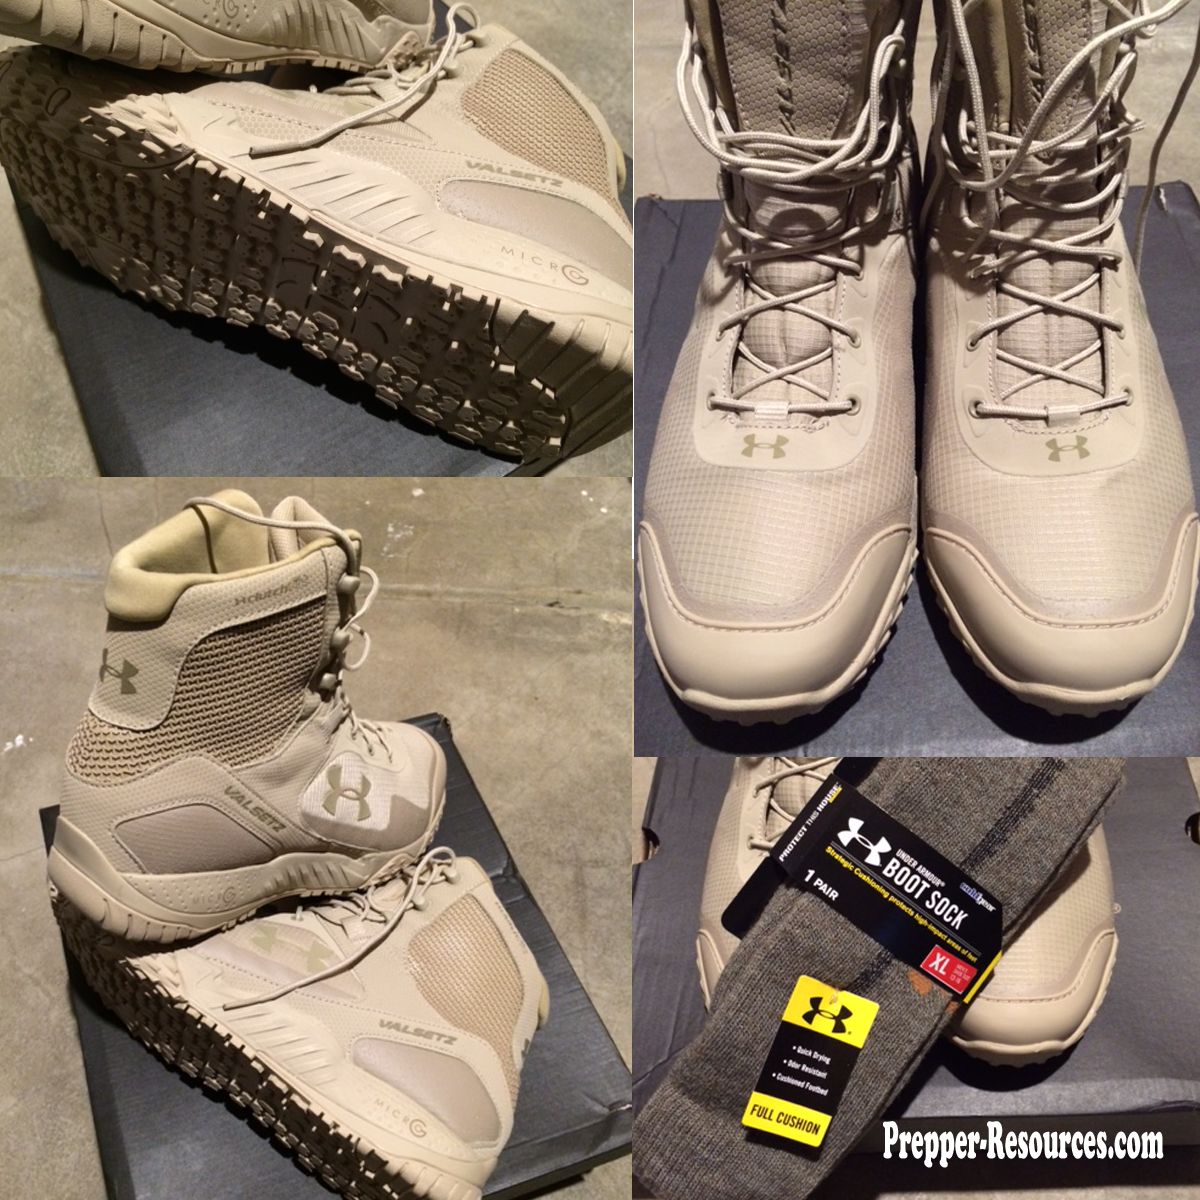 Tactical Boots Review Under Armour Rts Valsetz Prepper